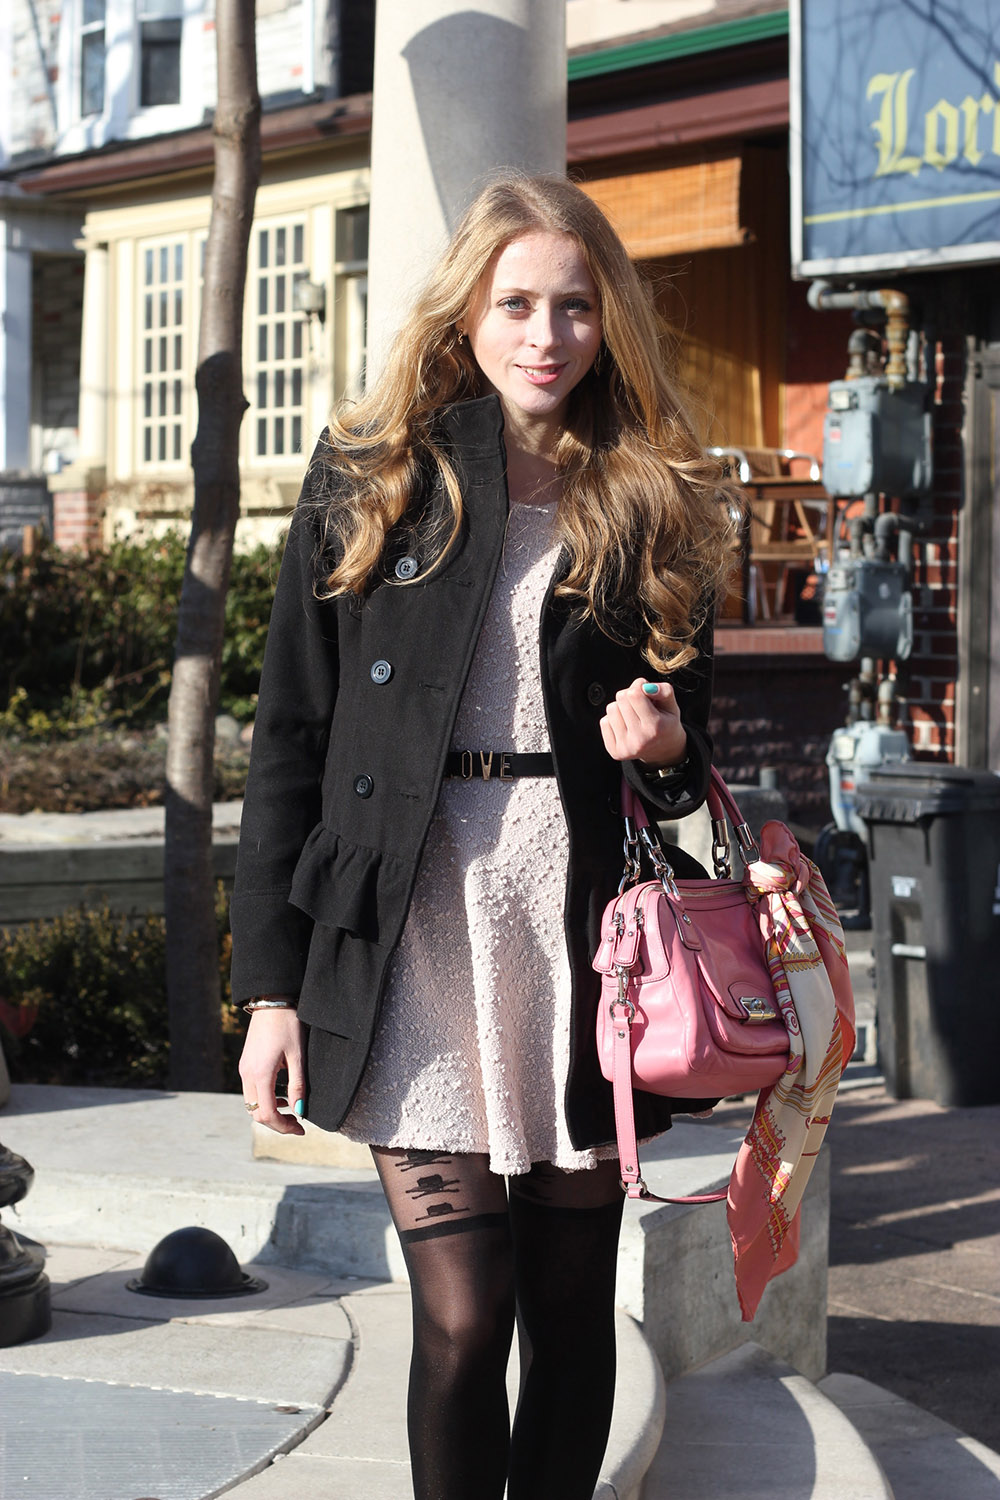 black jacket and pink dress and bag